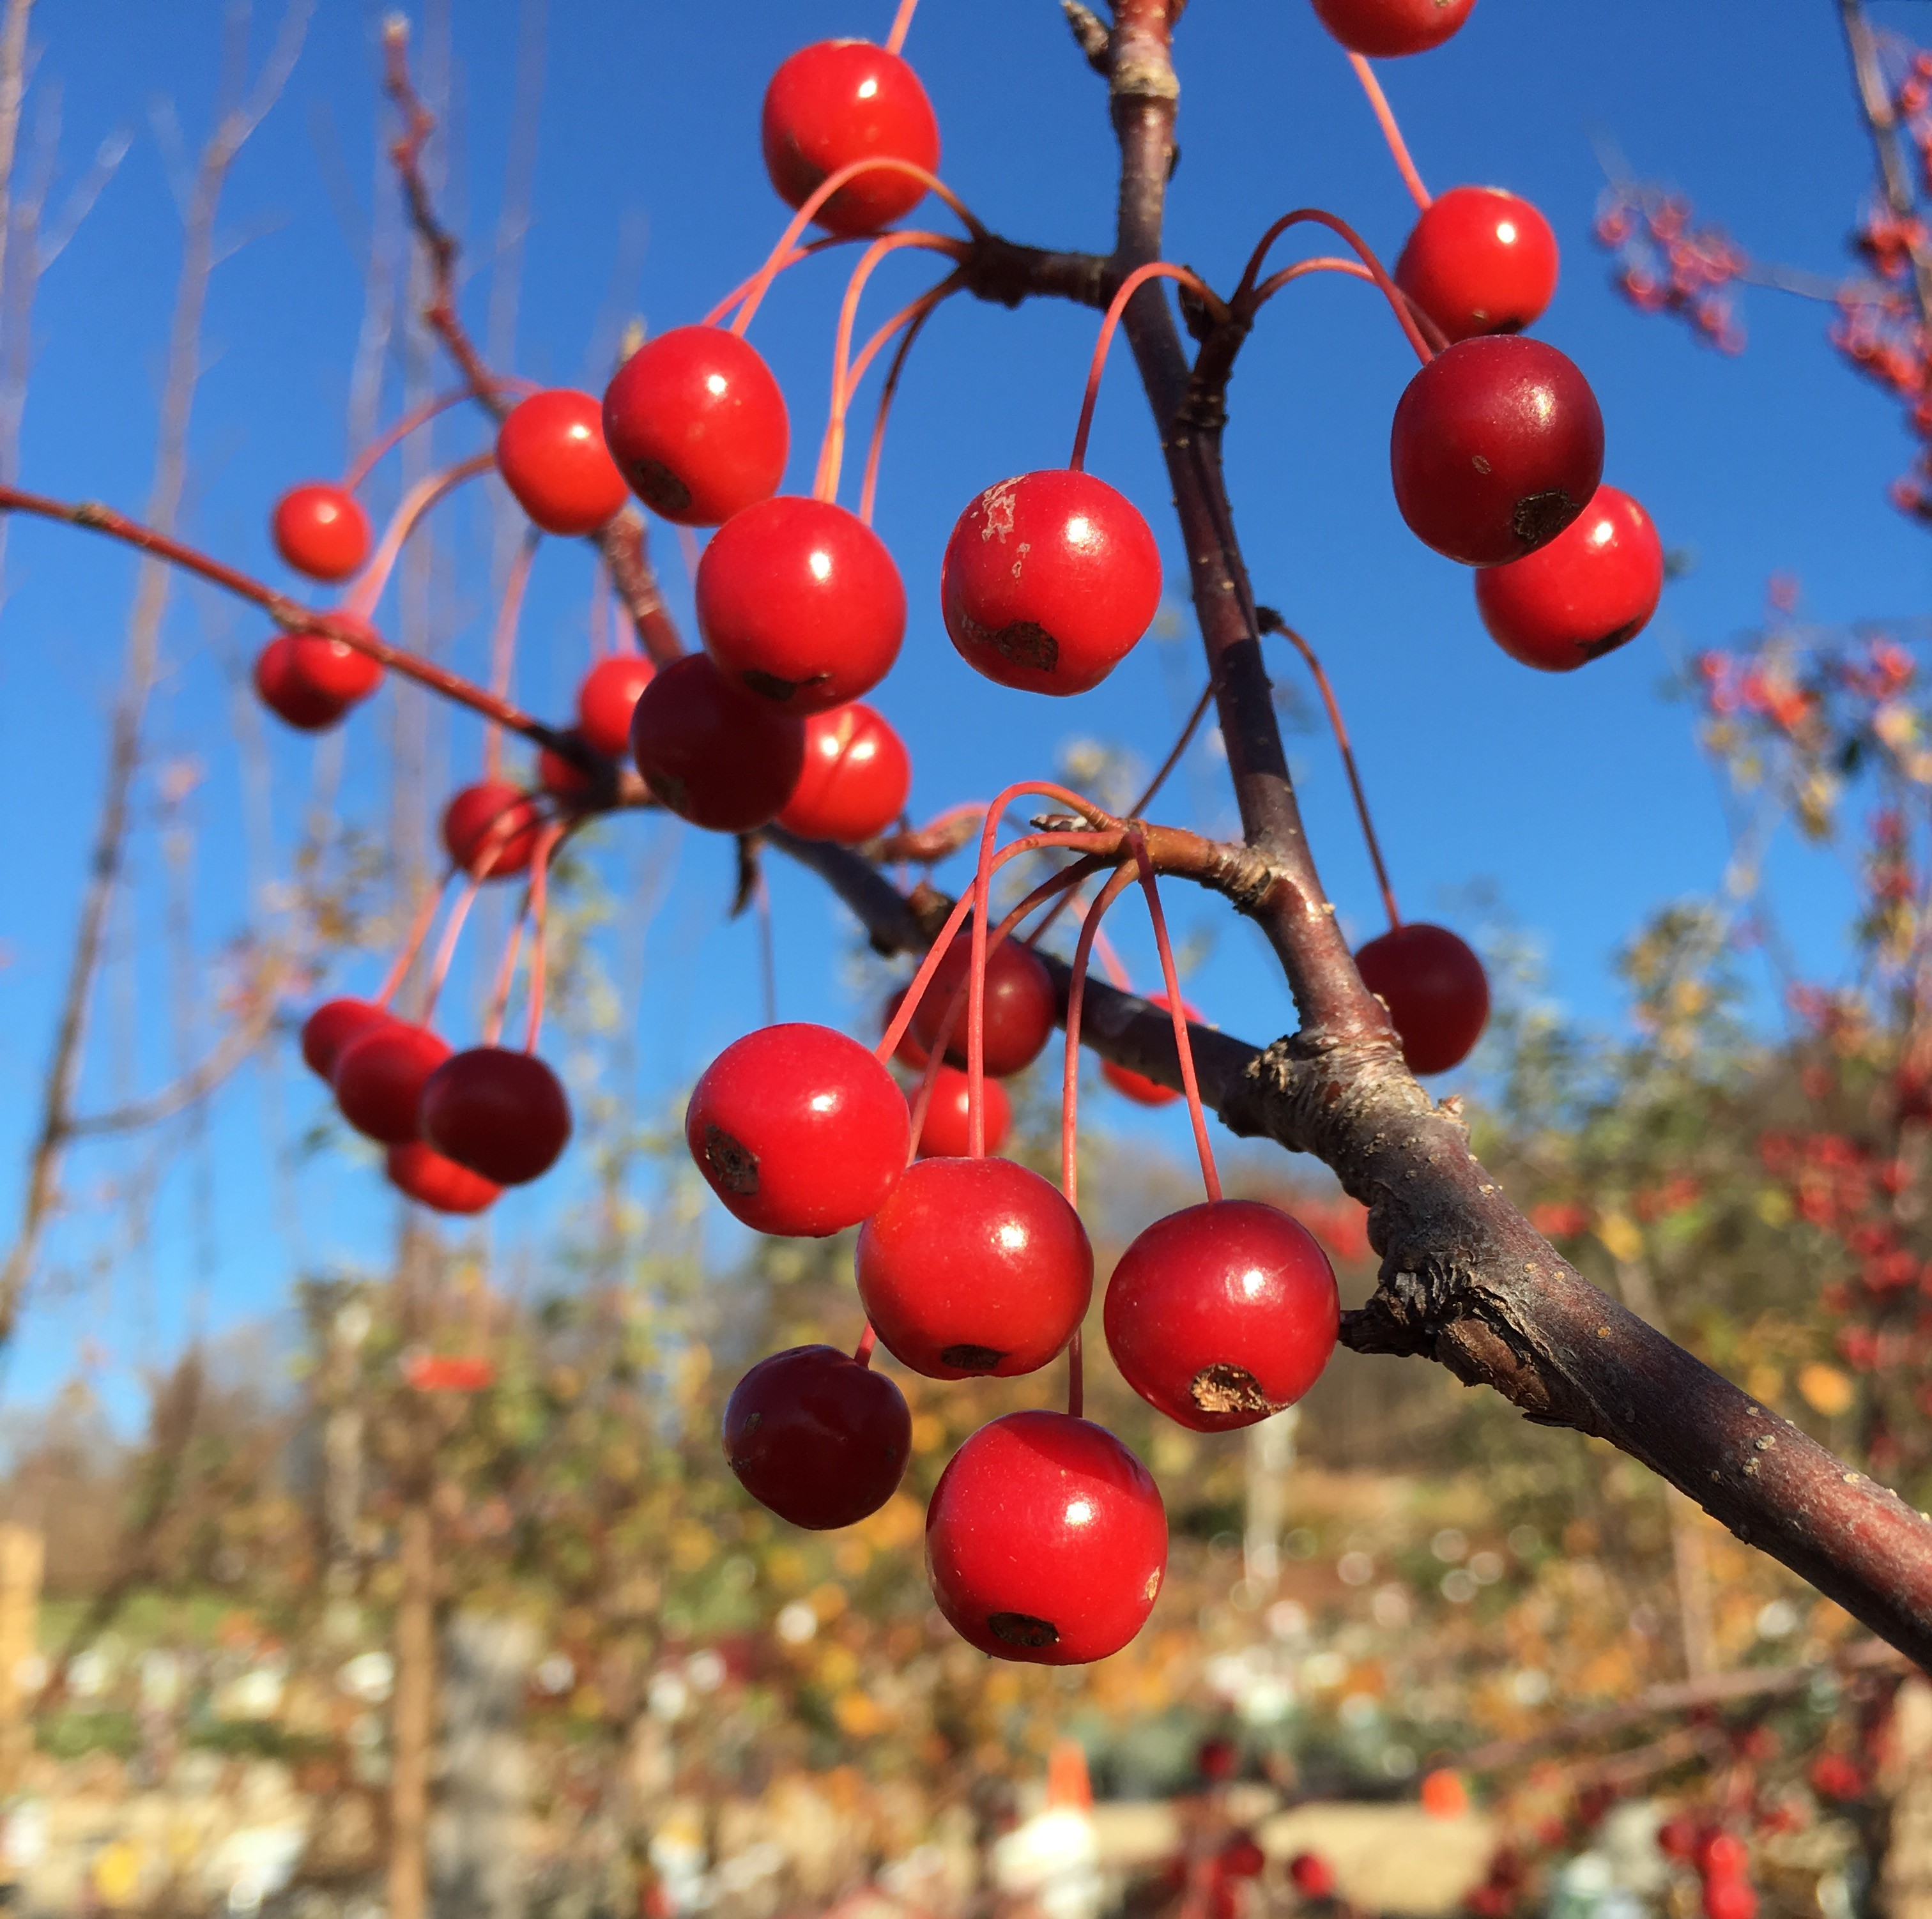 How to Prune a Cherry Tree. In this Article: Article Summary Heading Your Tree Creating a Scaffold Whorl Pruning a Mature Tree Community Q&A 11 References Pruning a cherry tree is necessary to create the right conditions for the tree to bear beautiful fruit year after year.